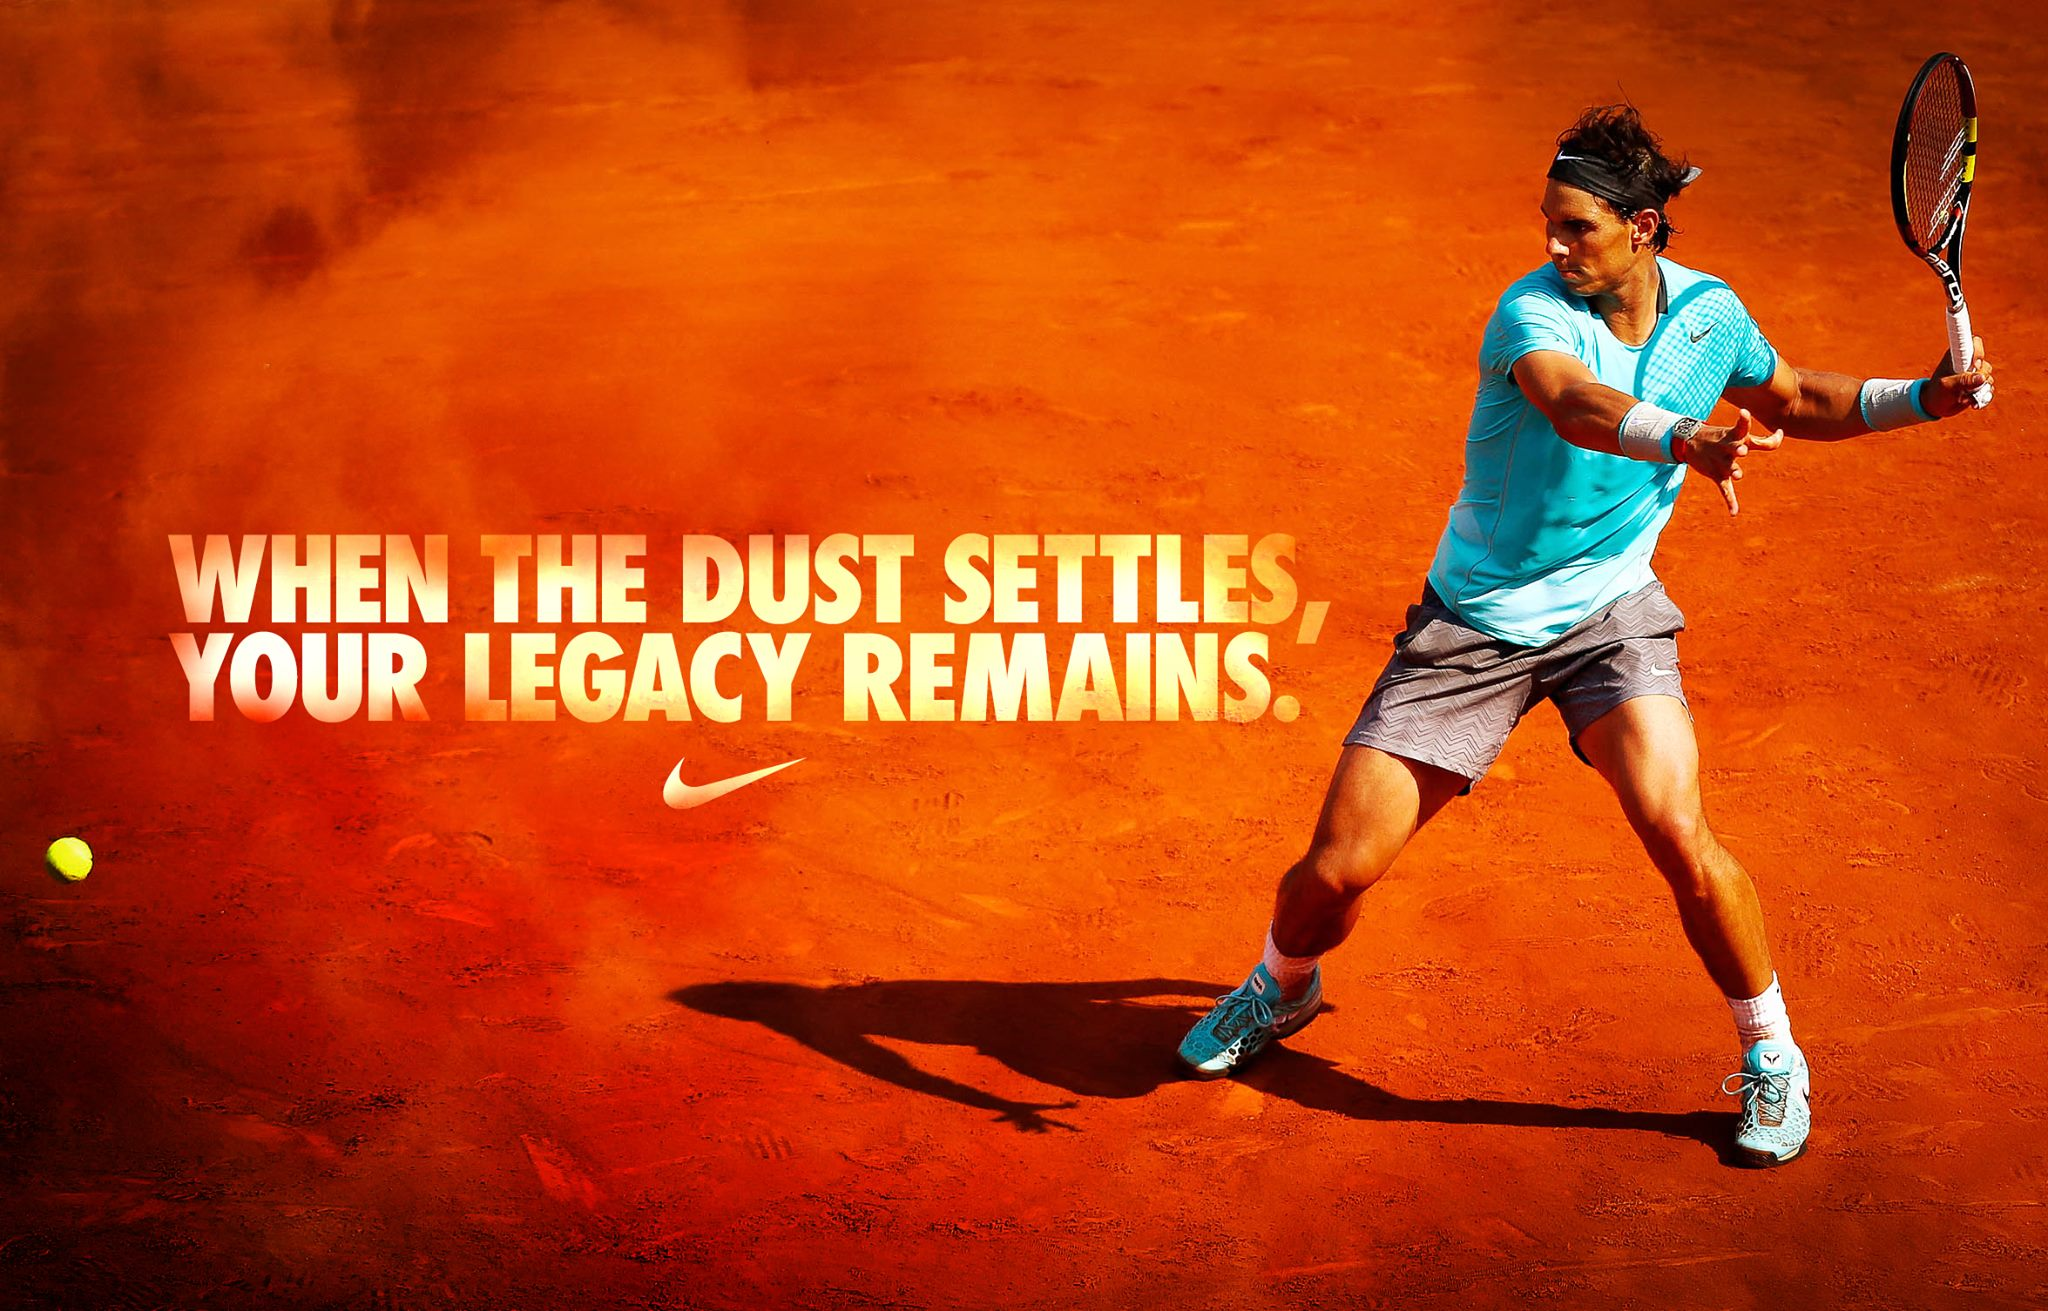 I Love Myself Quotes Wallpapers Rafael Nadal Wins Record 9th French Open In Nike Air Max